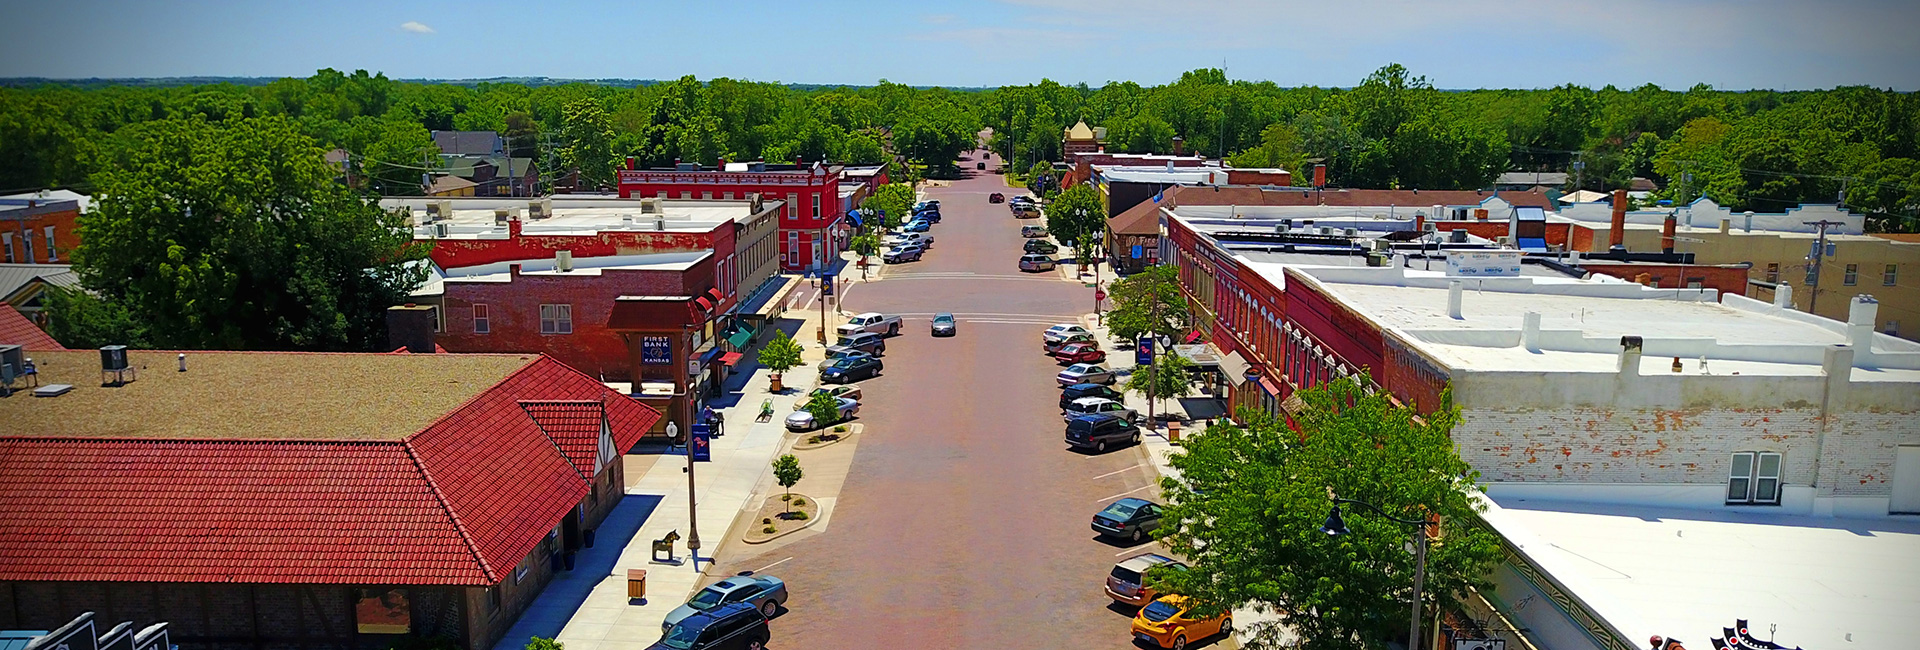 Downtown-Lindsborg